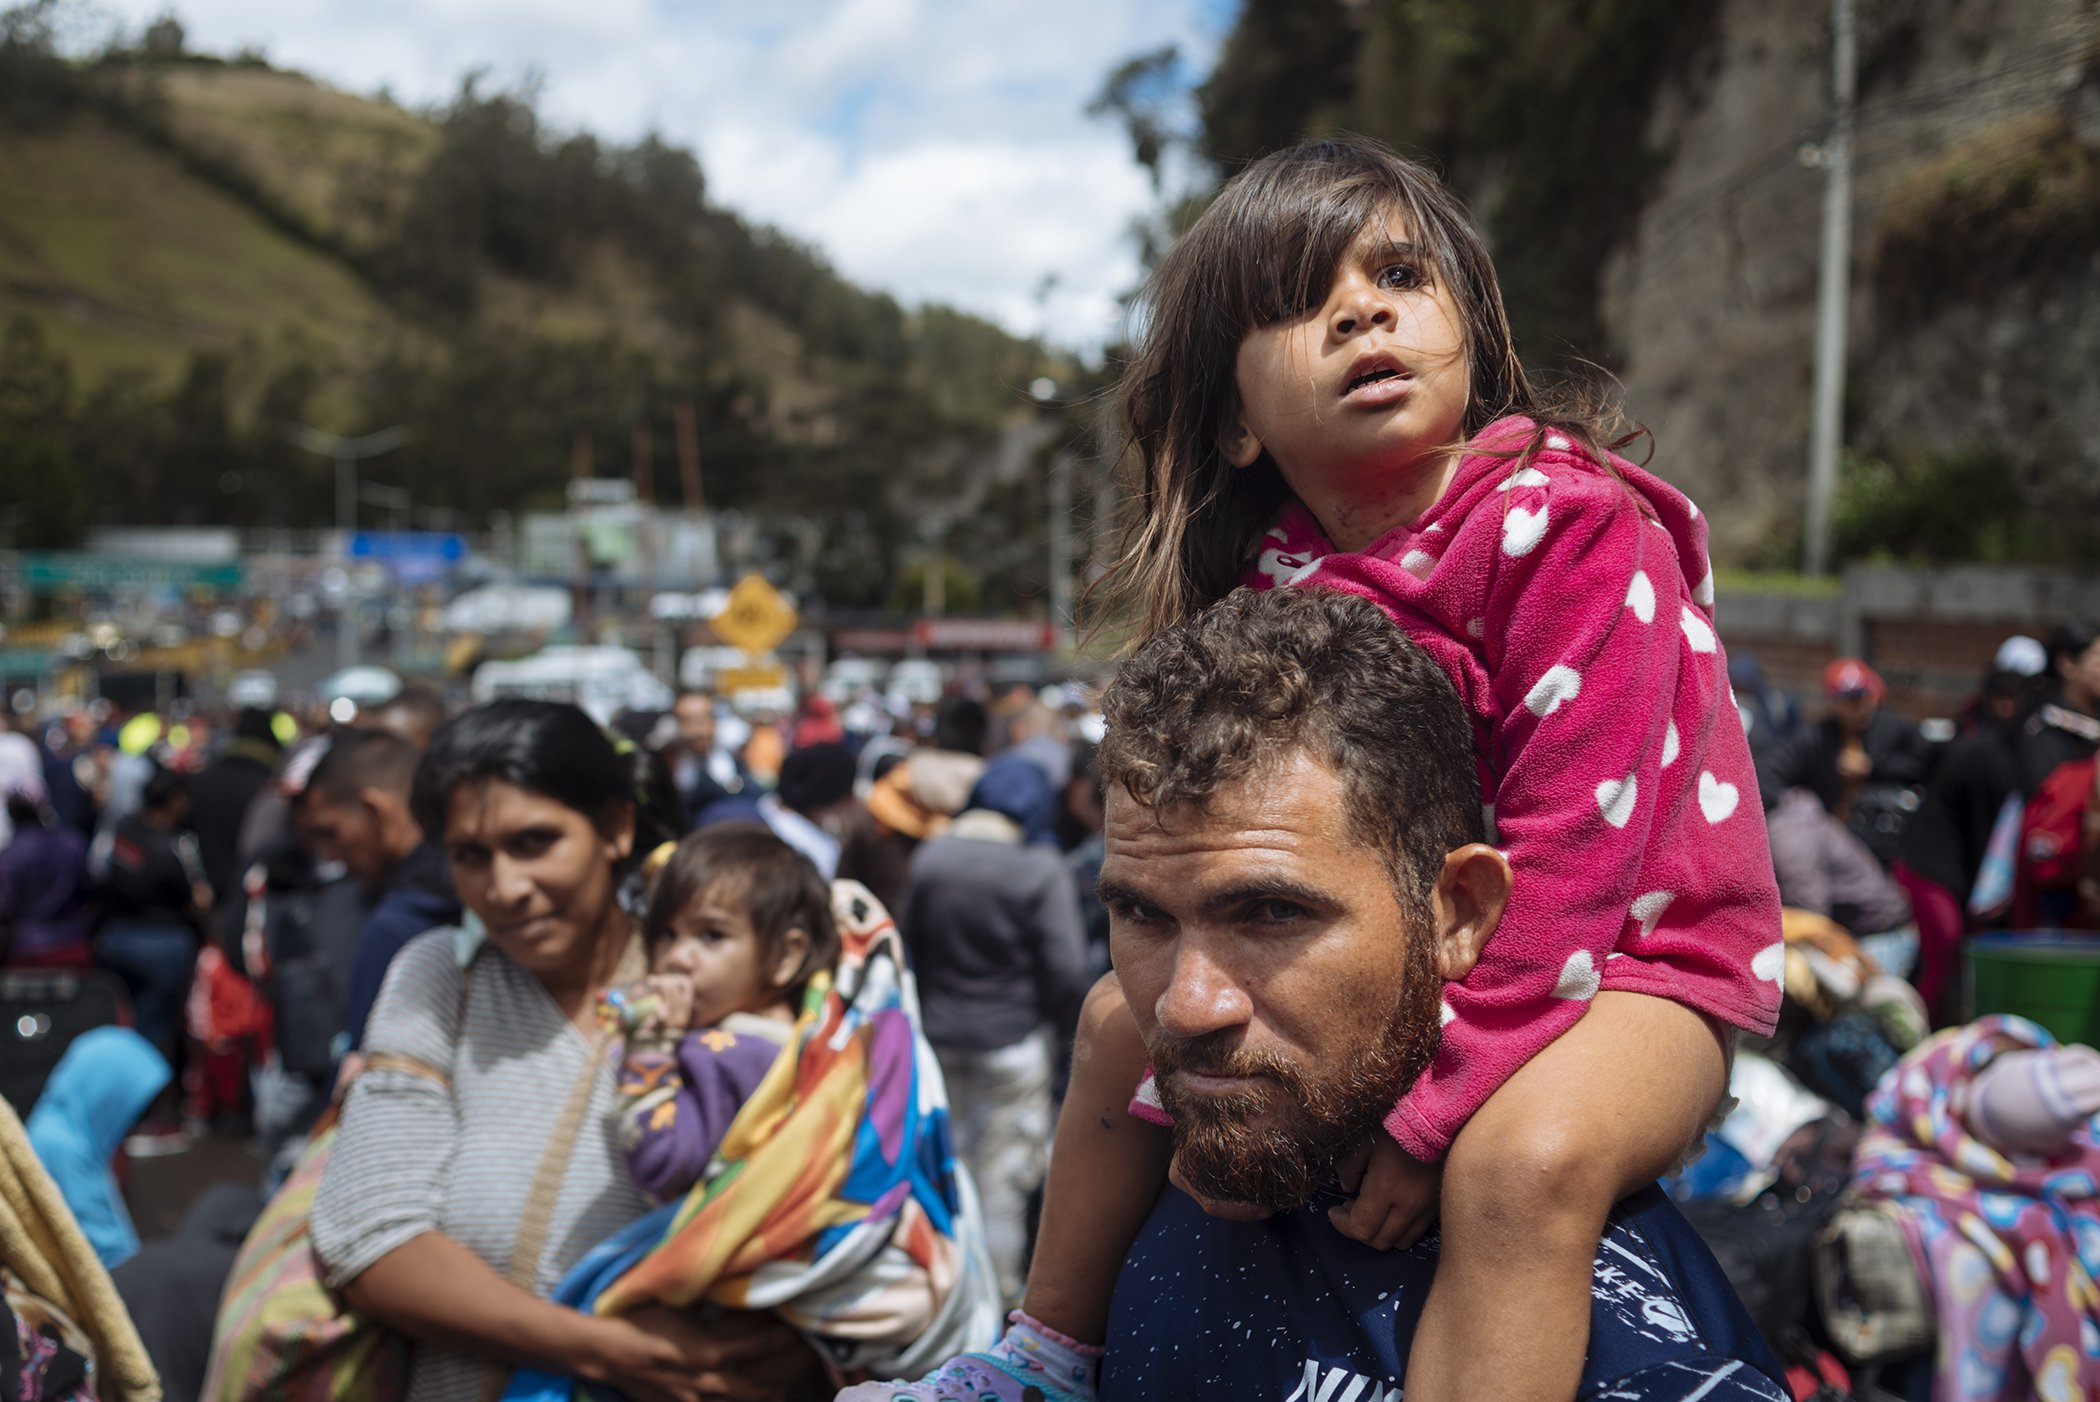 Venezuela-Children-UNICEF-Report-Migration-Full-Frame.jpg